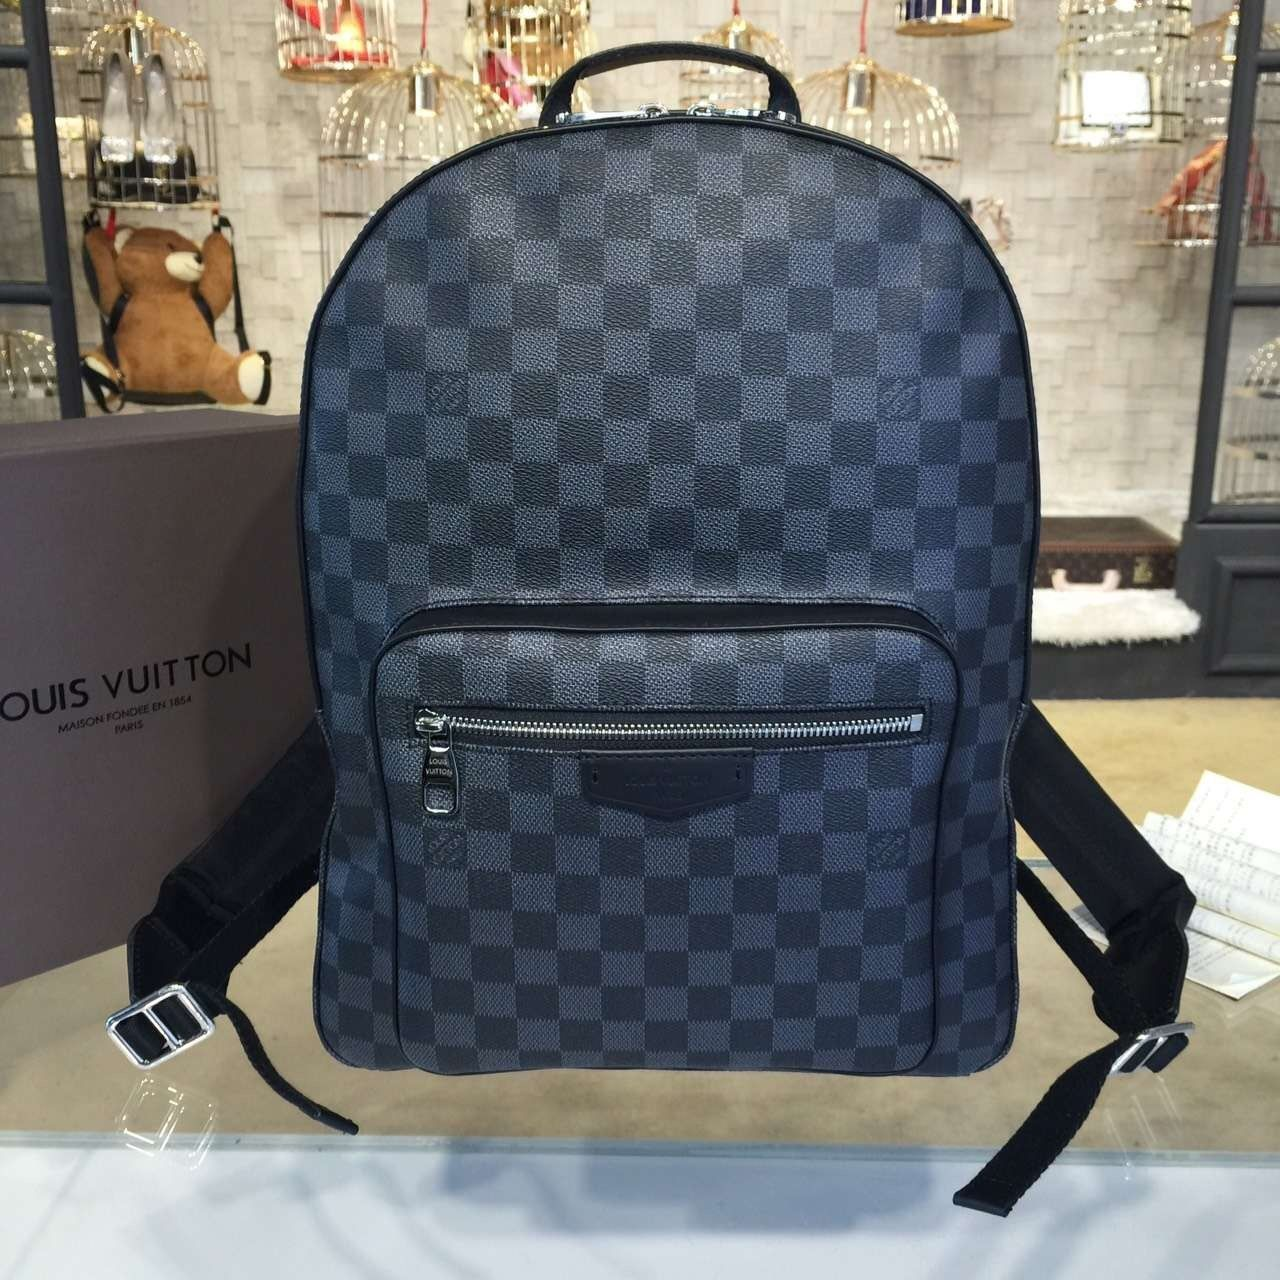 54b475038288 Louis Vuitton Josh Backpack Damier Canvas Macassar Fall Winter 2016  Collection M41530 - My Luxe Fashions